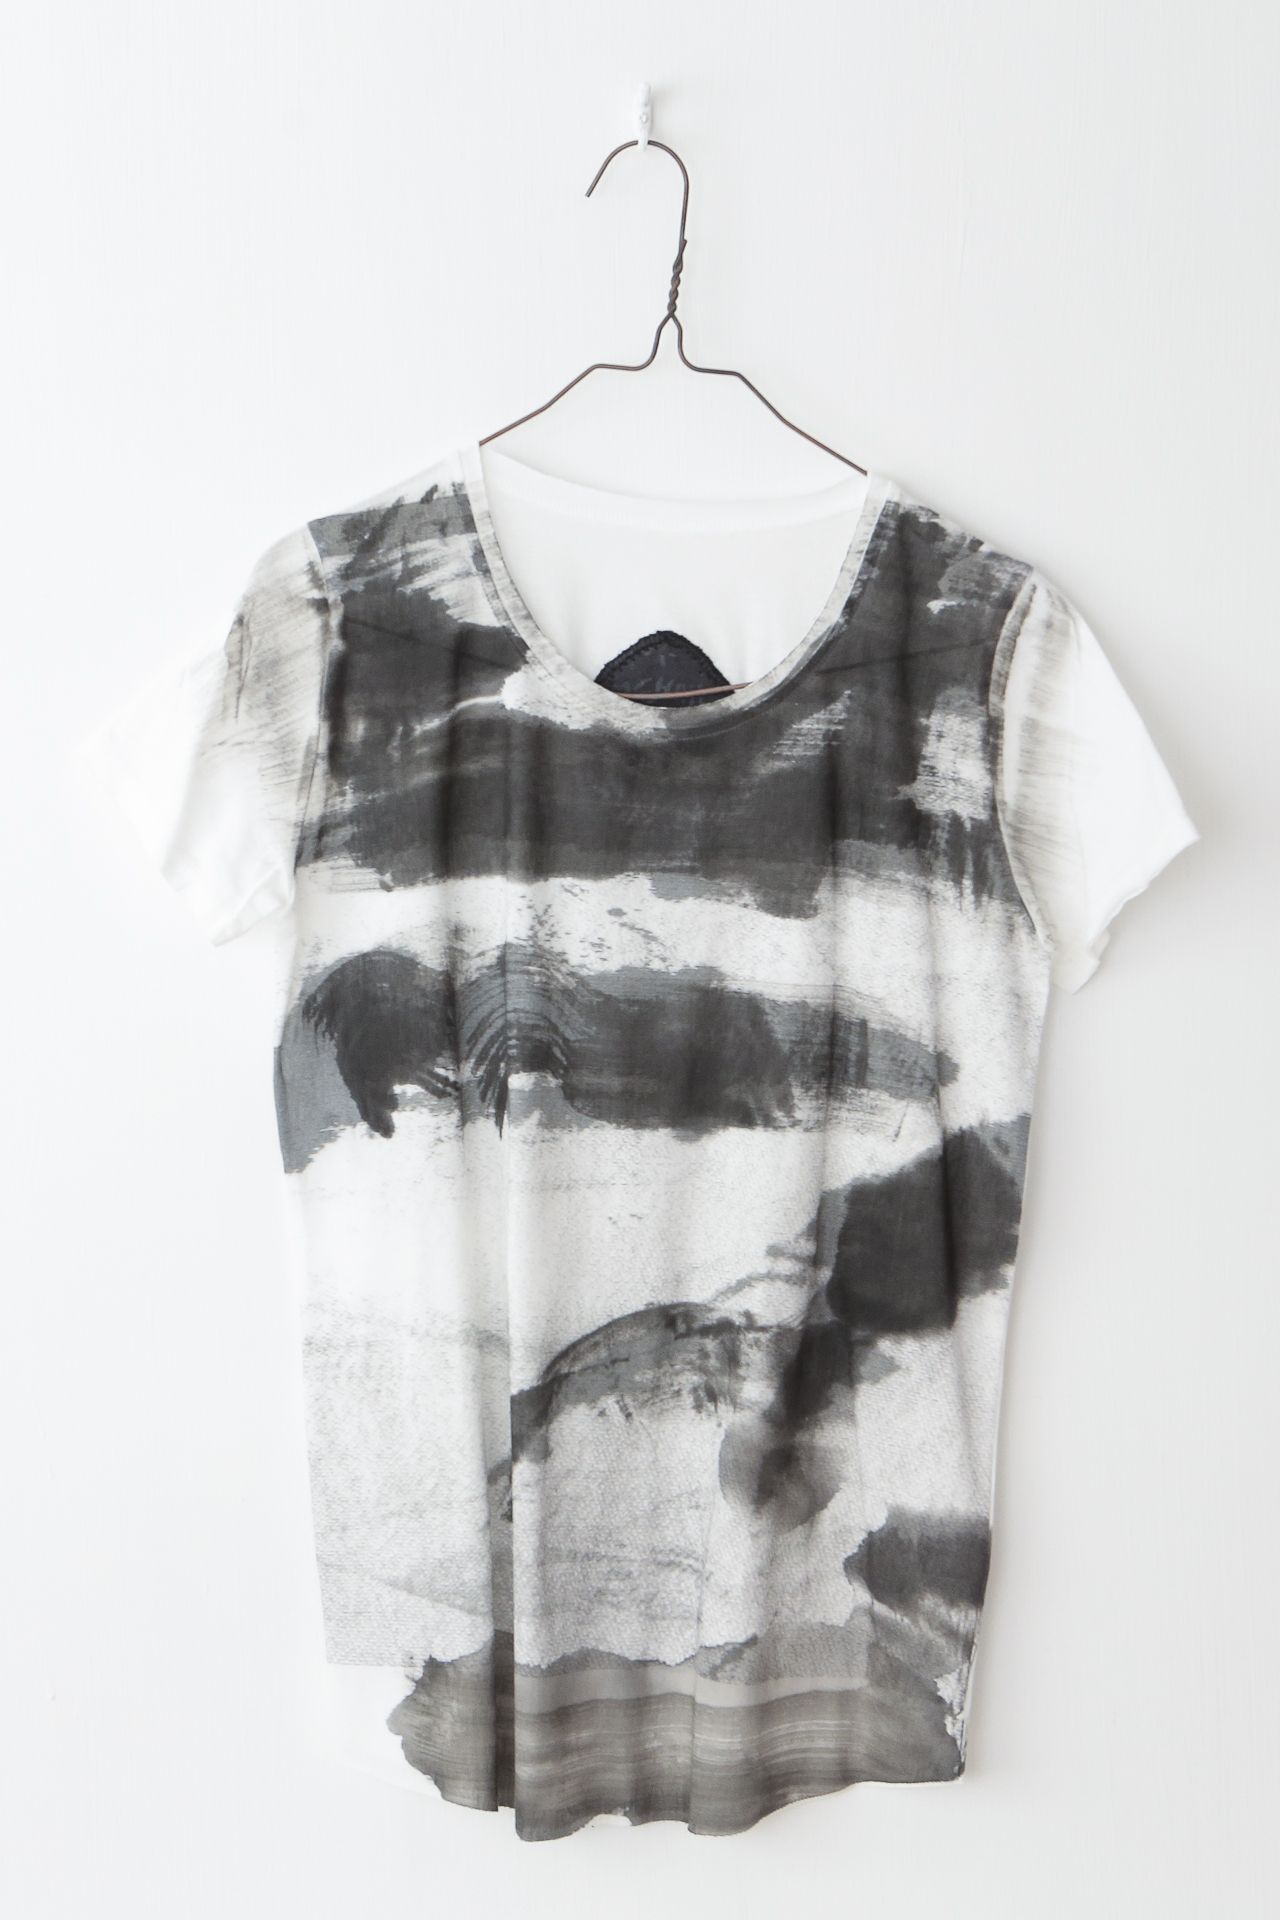 T-shirt【COTTON コットン】[Hand Painted]CS2117[税/送料込]